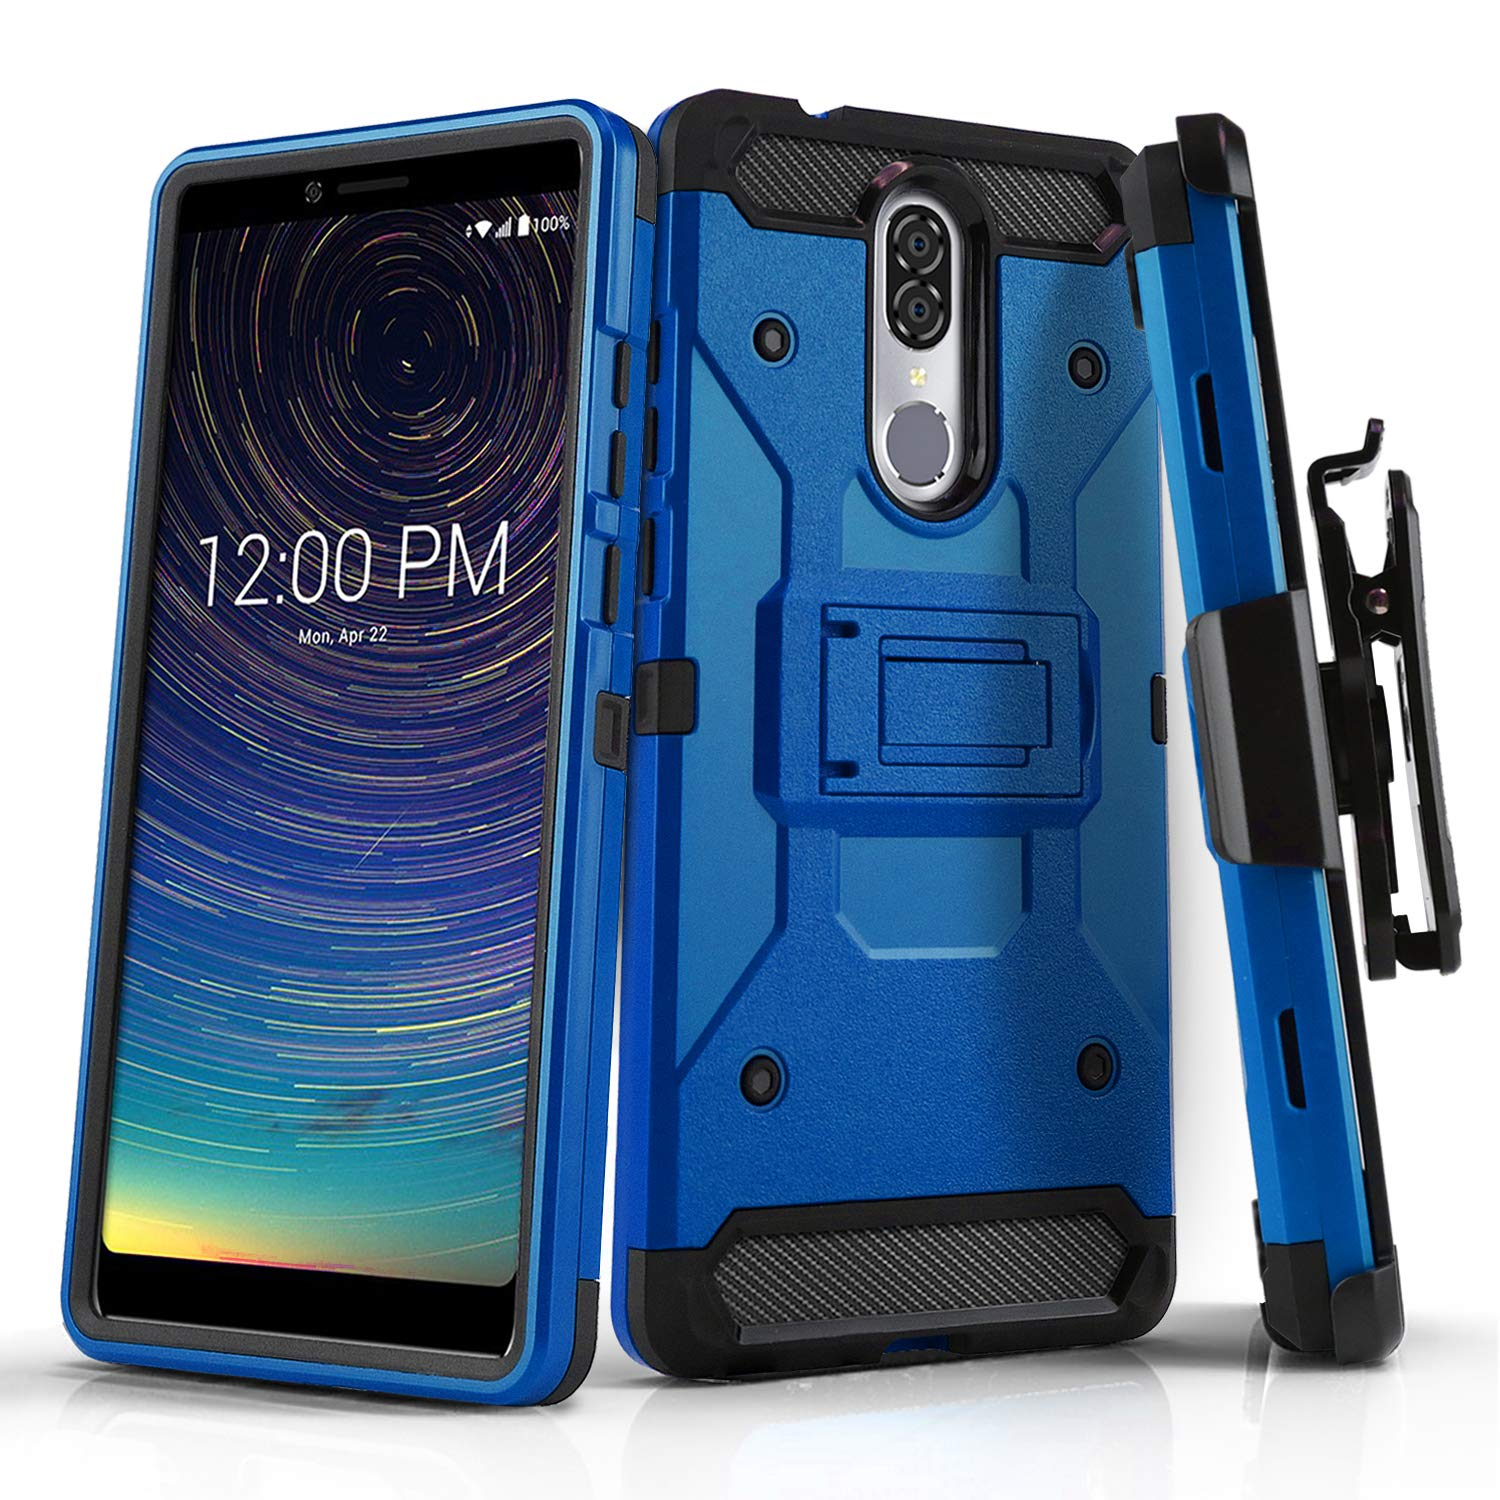 Phone Case for [COOLPAD Legacy (Metro PCS, T-Mobile)], [Tank Series][Blue]  Shockproof Defender Cover with [Kickstand] & [Swivel Belt Clip Holster] for